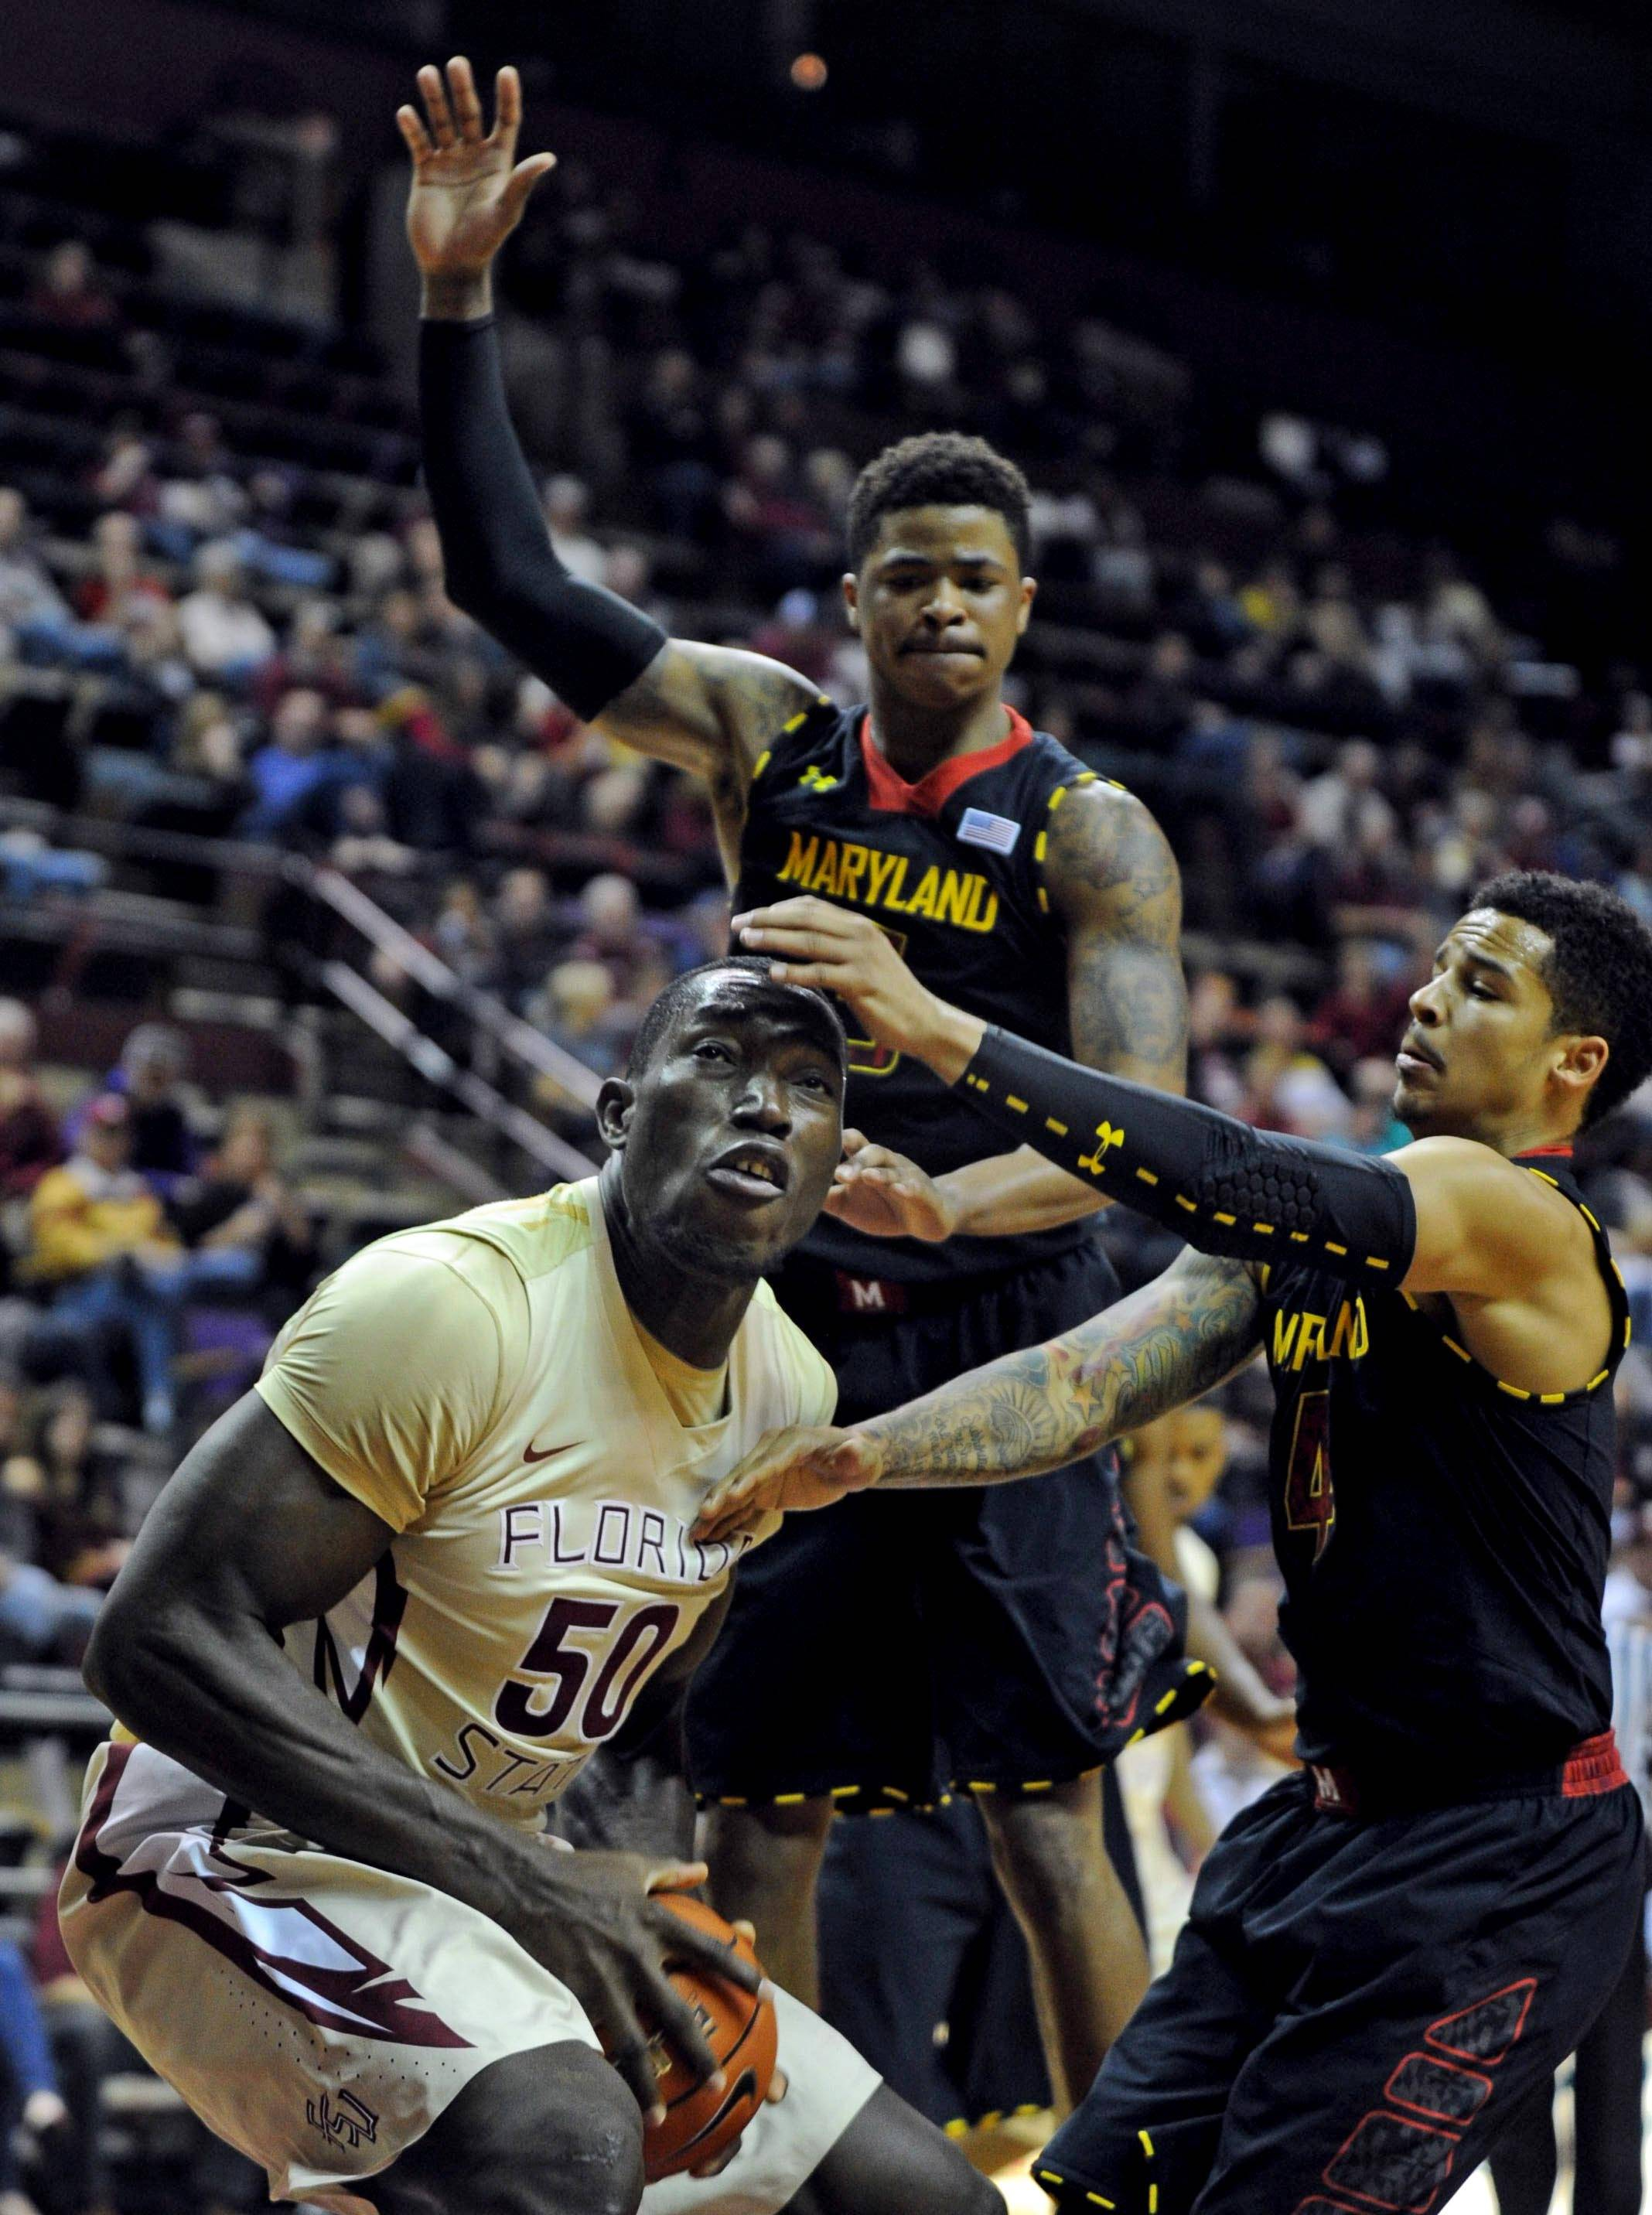 Jan 12, 2014; Tallahassee, FL, USA; Florida State Seminoles center Michael Ojo (50) looks to shoot as he is defended by Maryland Terrapins guard Seth Allen (4) and guard Nick Faust (5) during the second half at Donald L. Tucker Center. Mandatory Credit: Melina Vastola-USA TODAY Sports